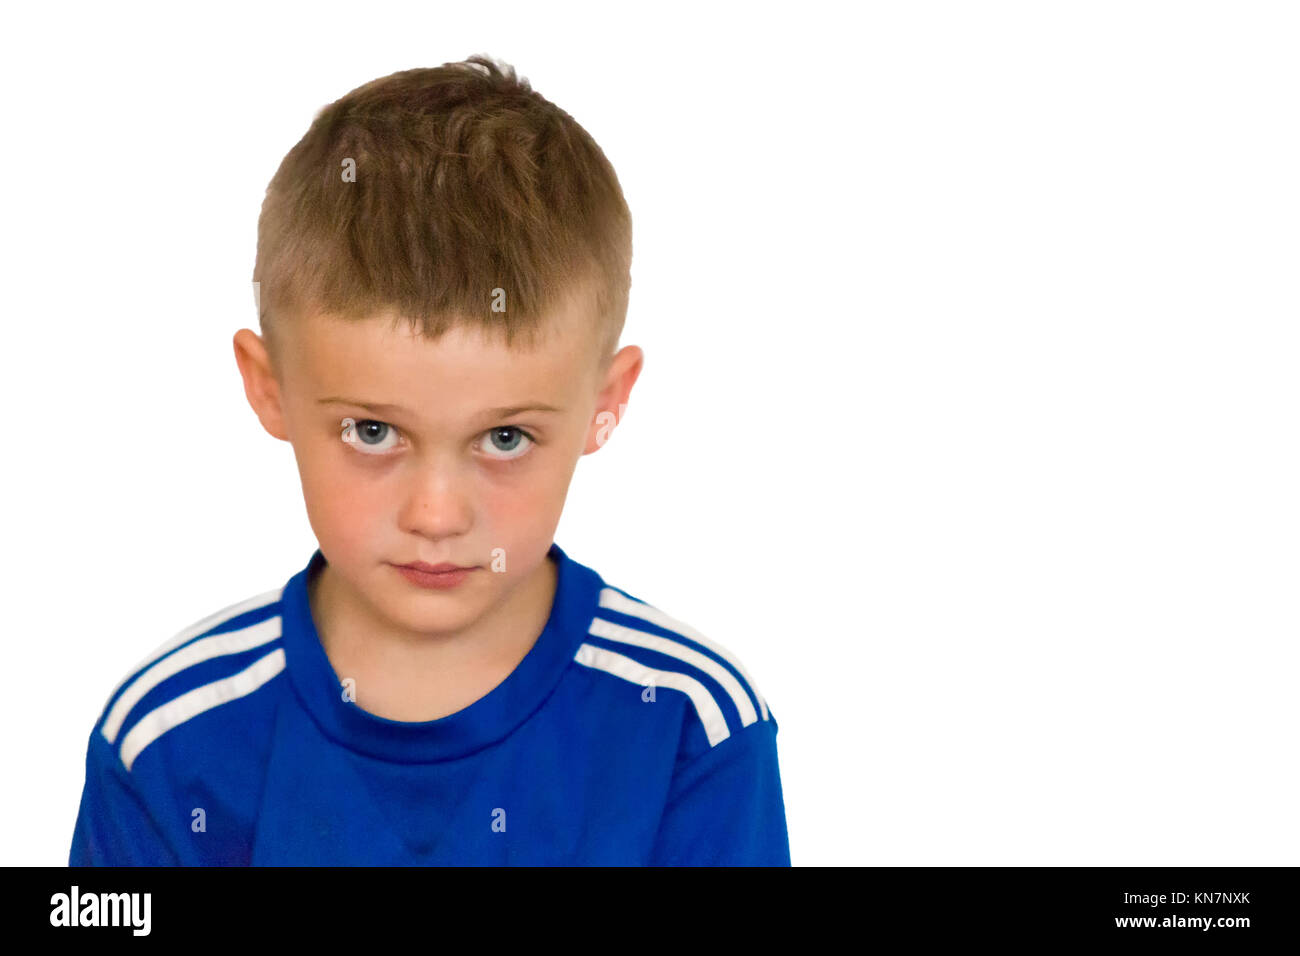 Young boy looking up head and shoulder portrait isolated on white background  Model Release: Yes.  Property Release: - Stock Image